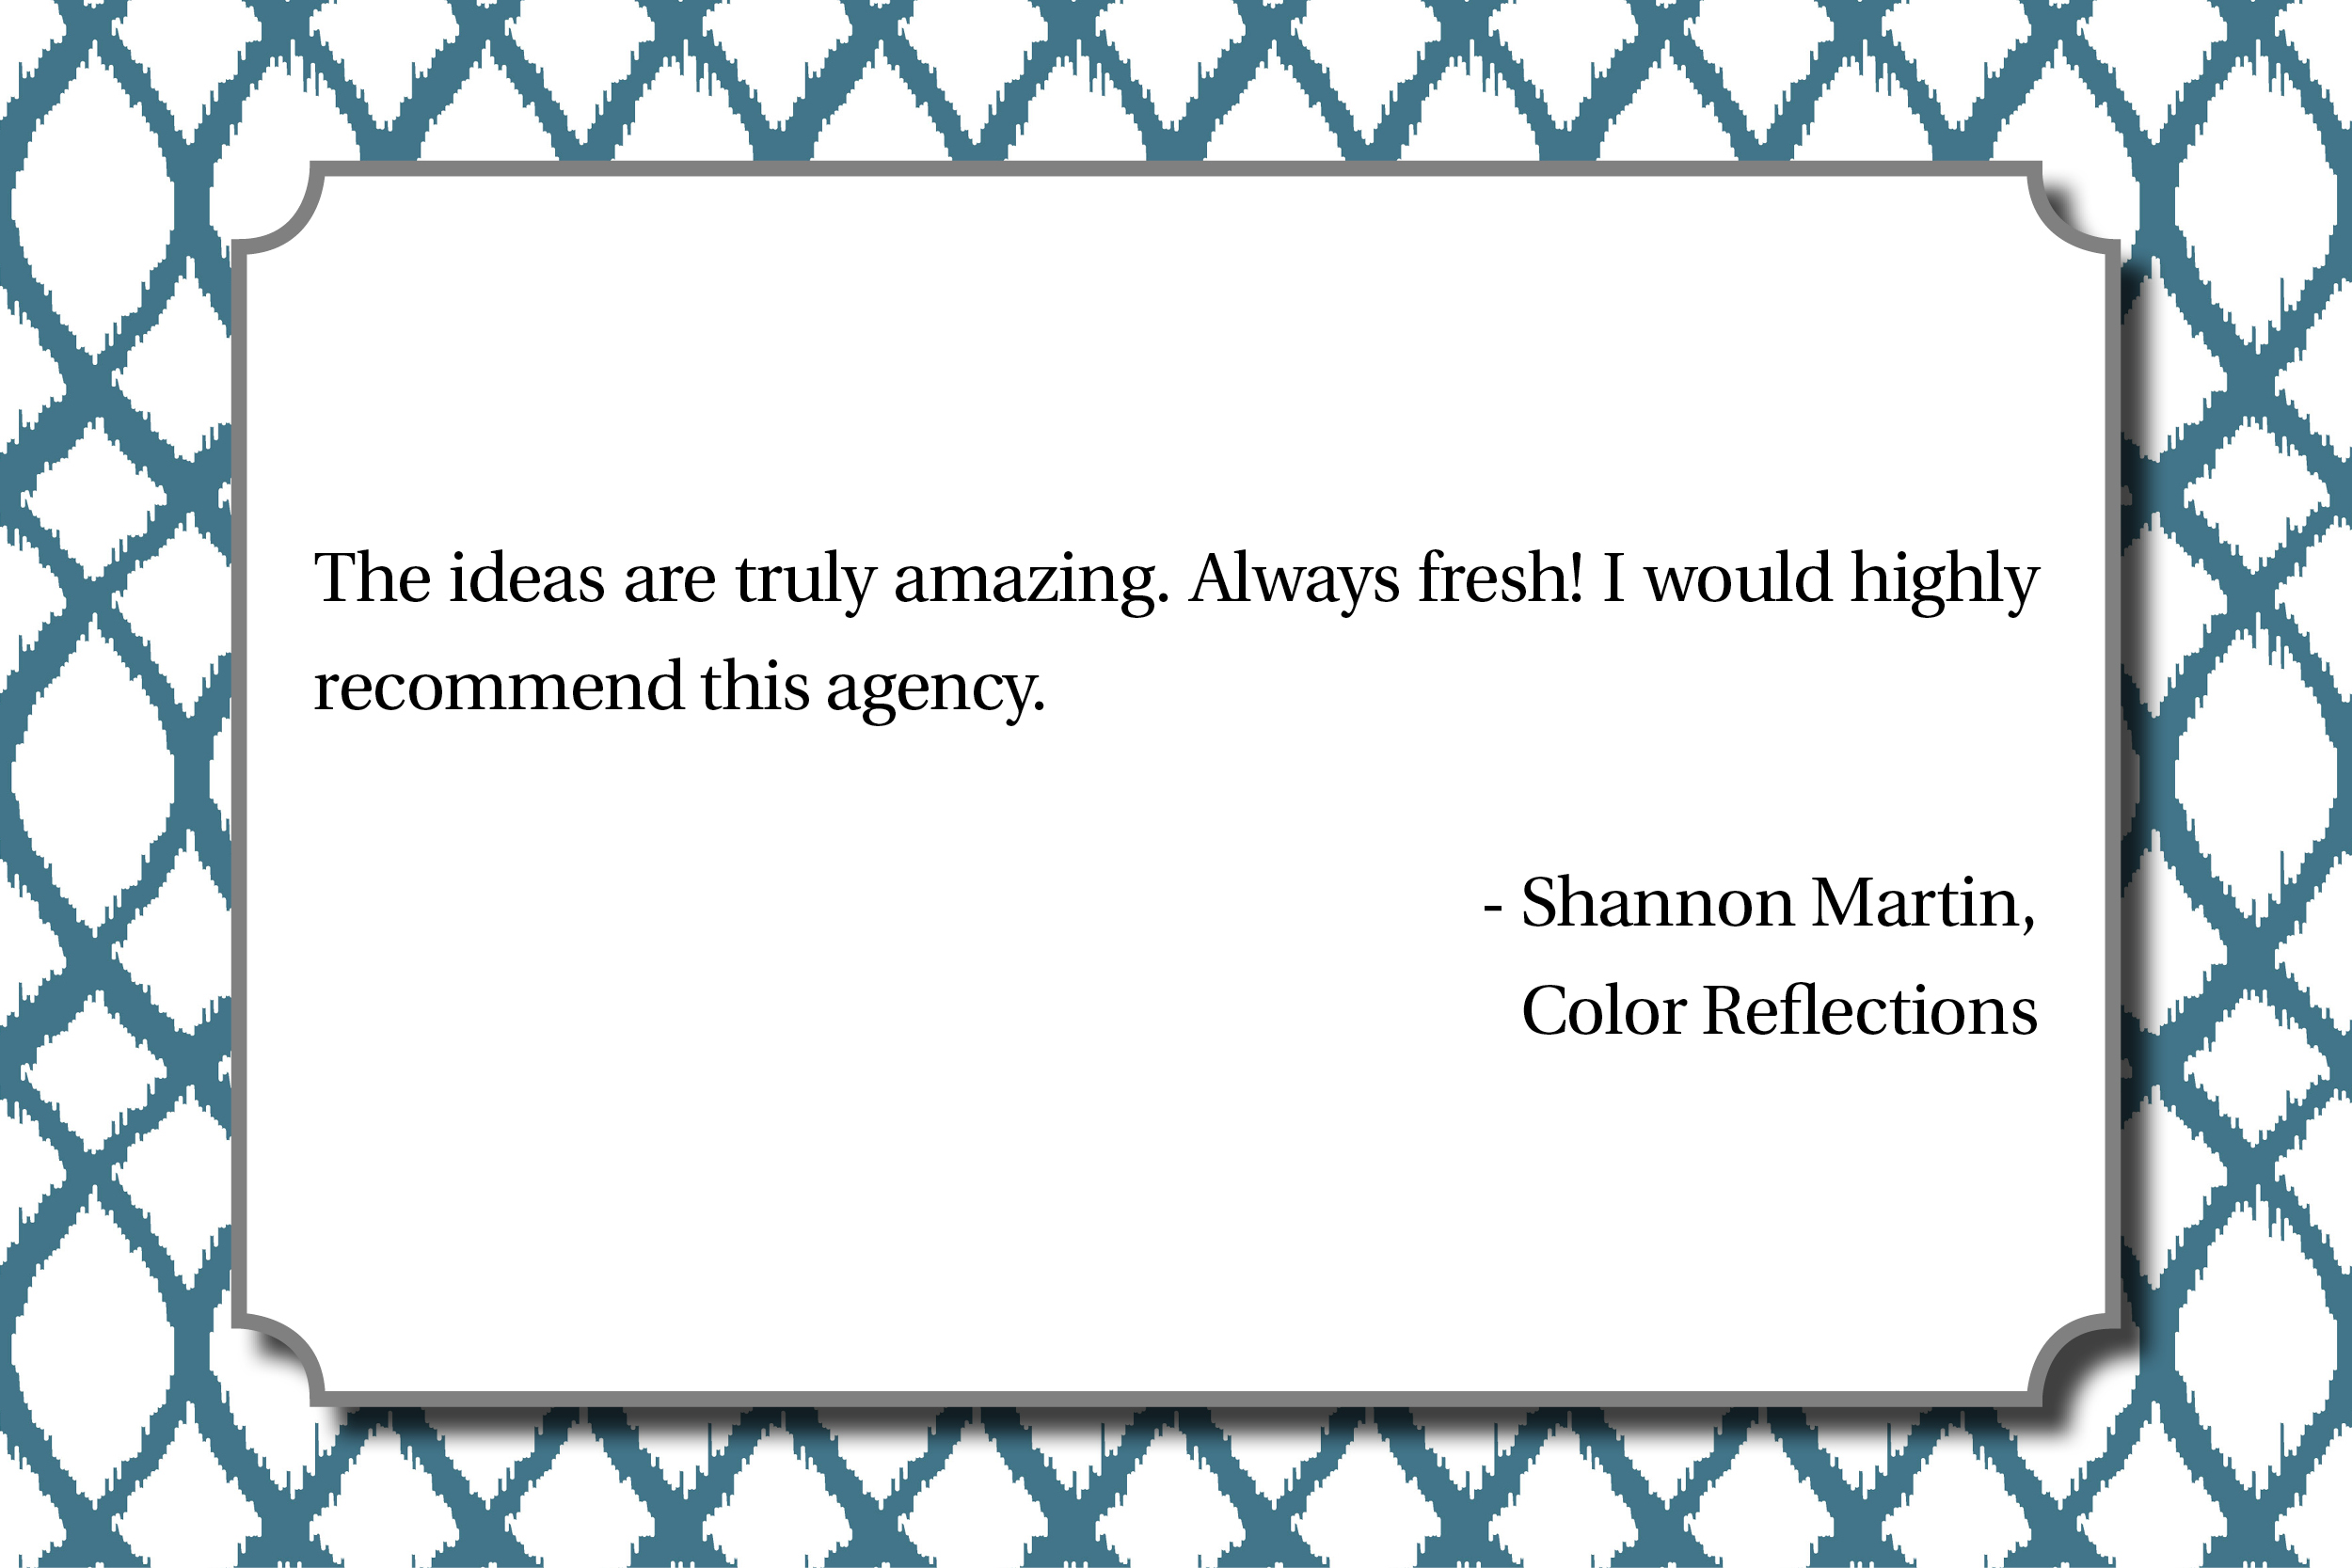 Color Reflections - Shannon Martin